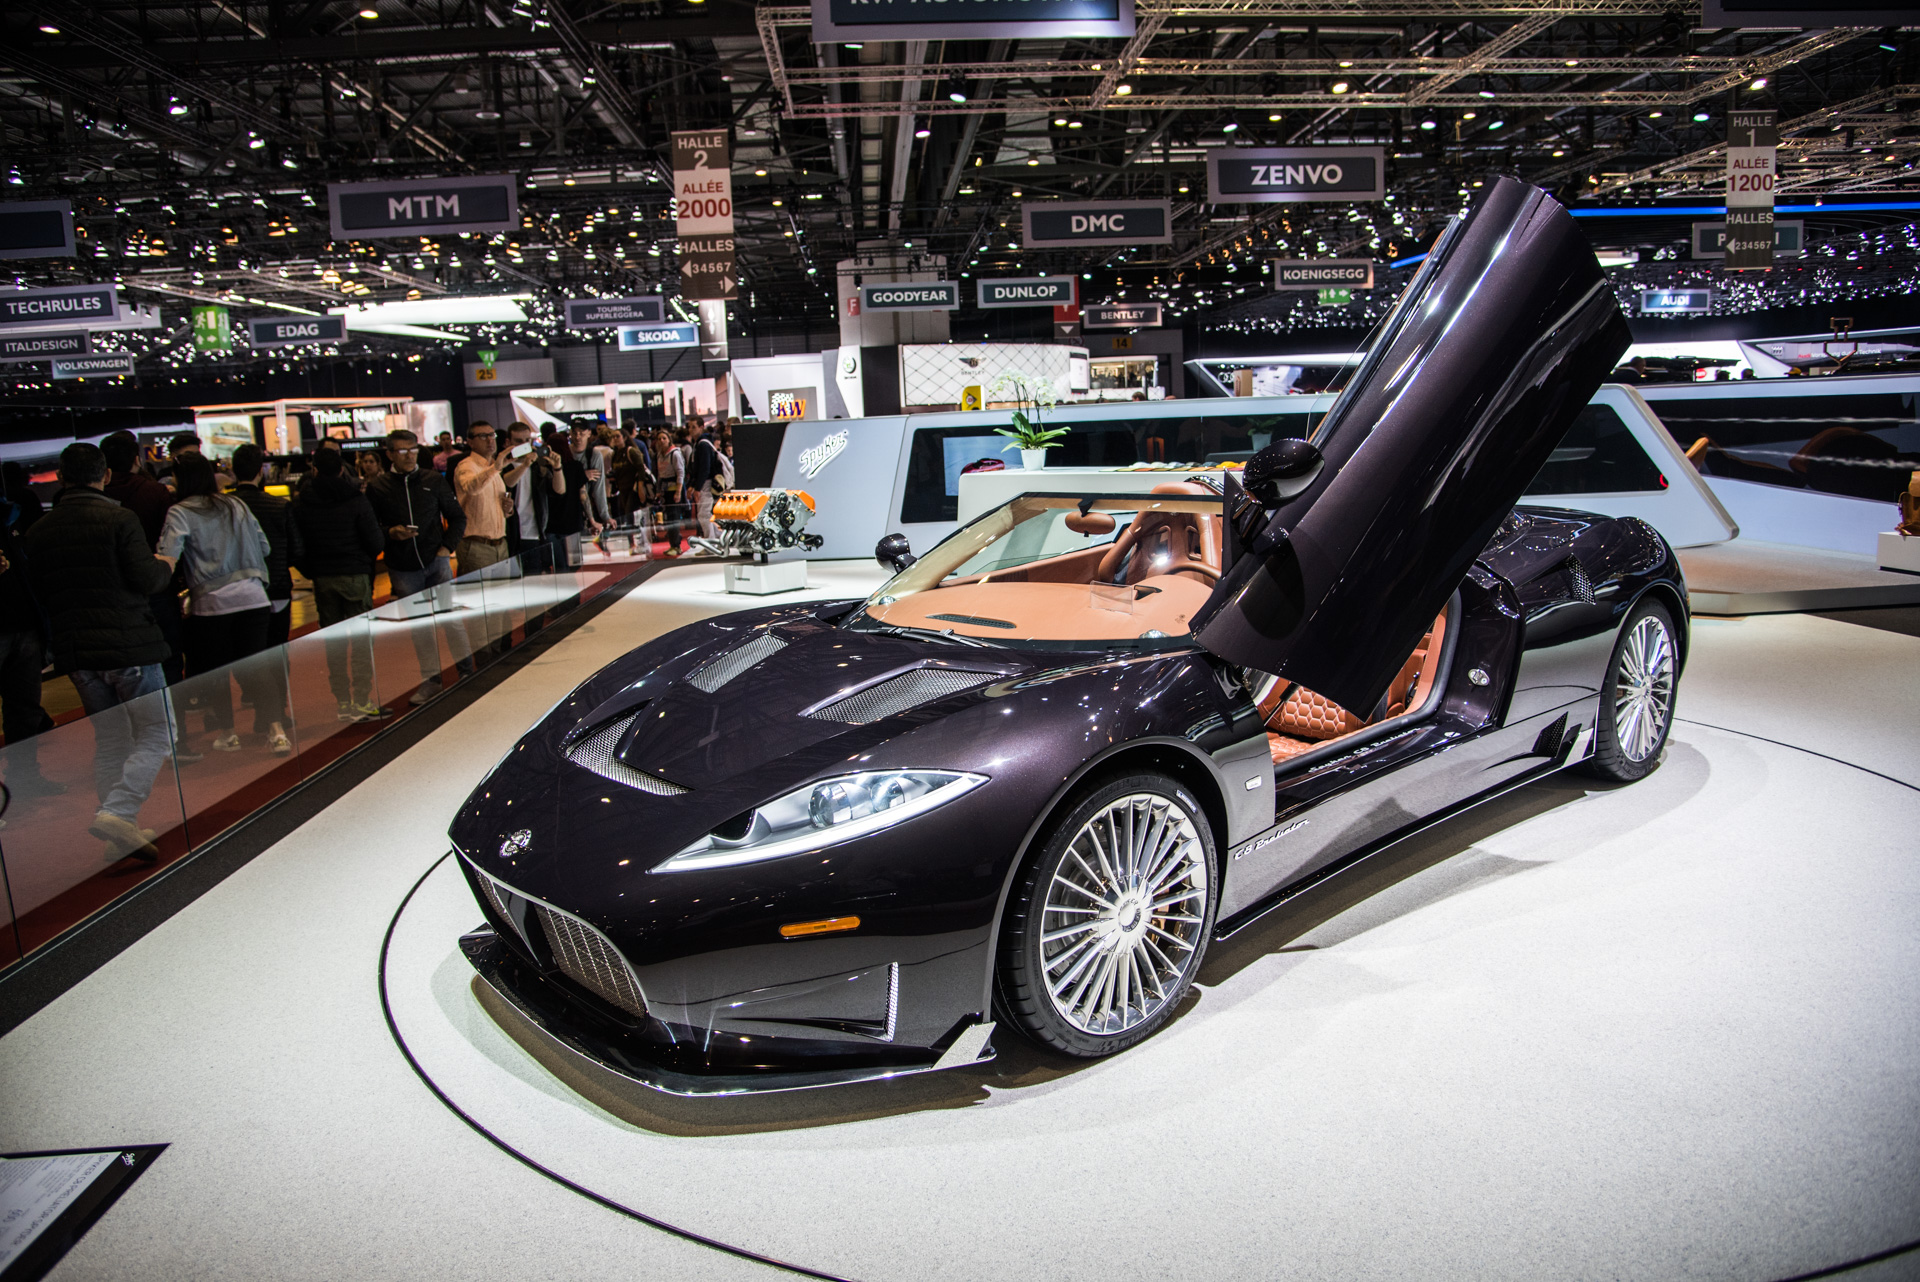 geneva-international-motor-show-igor-sinitsin-125